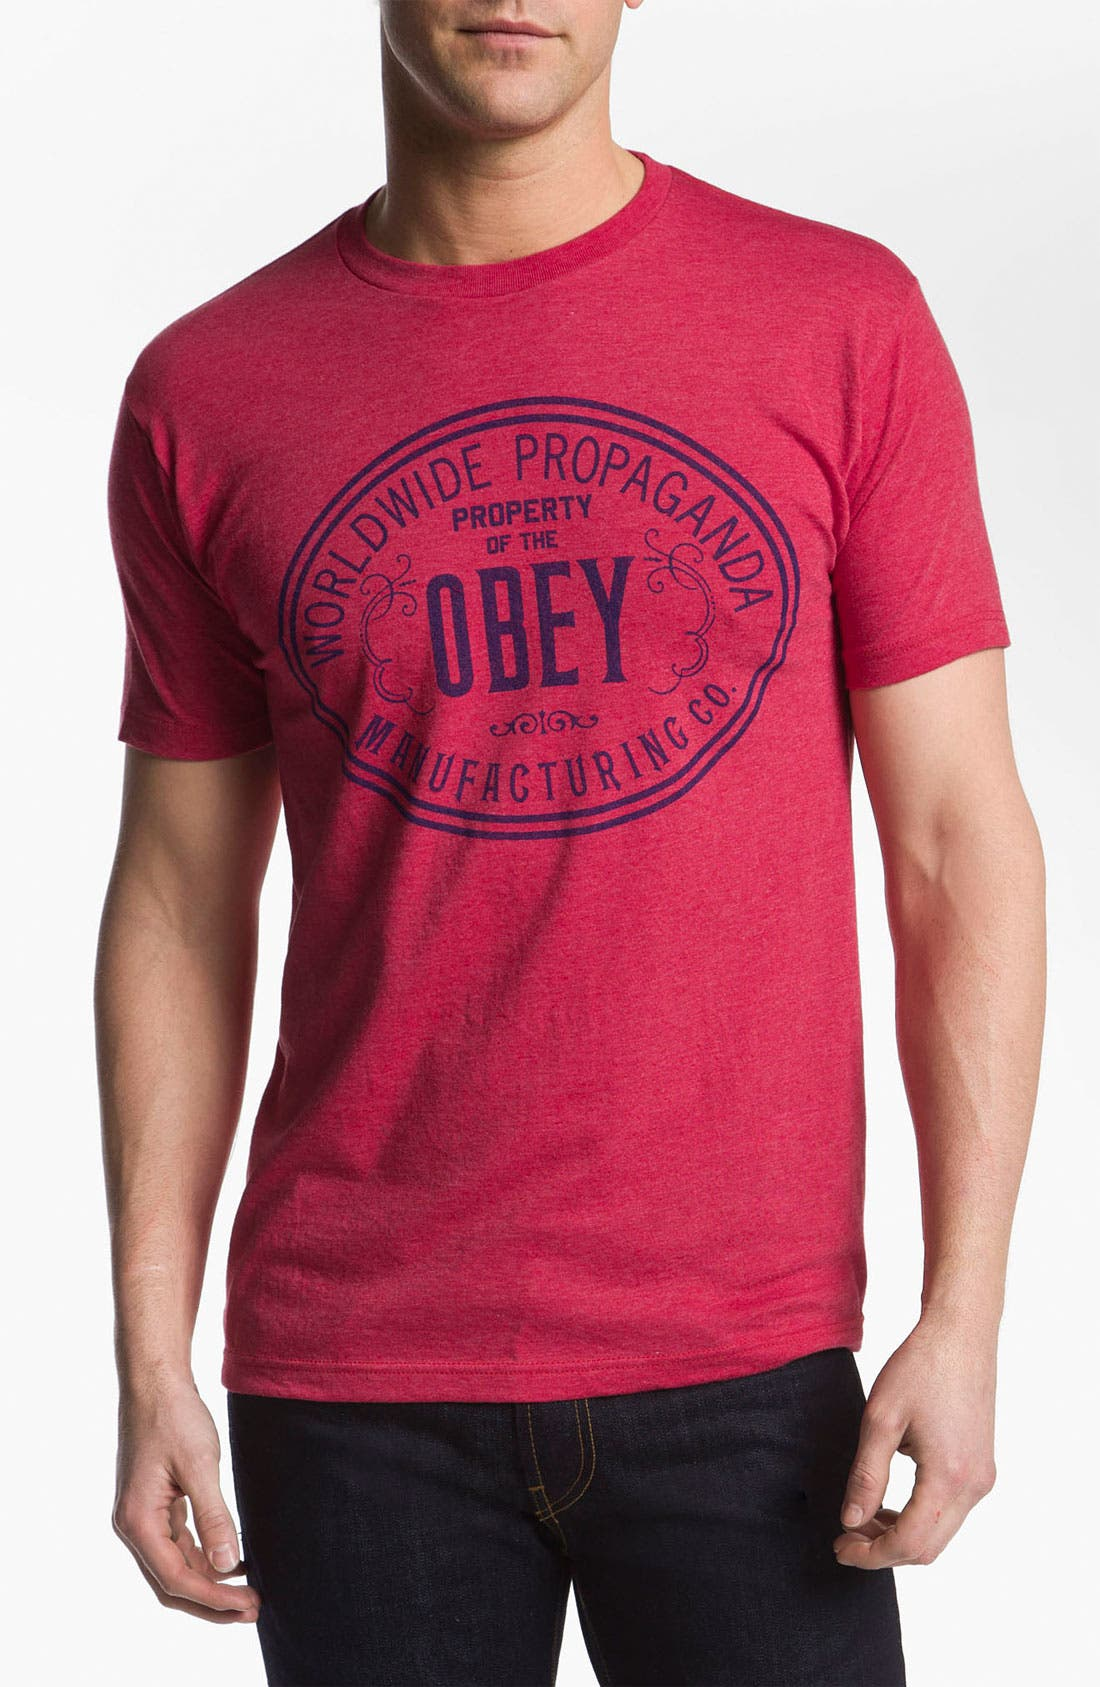 Main Image - Obey 'Property of Obey' T-Shirt